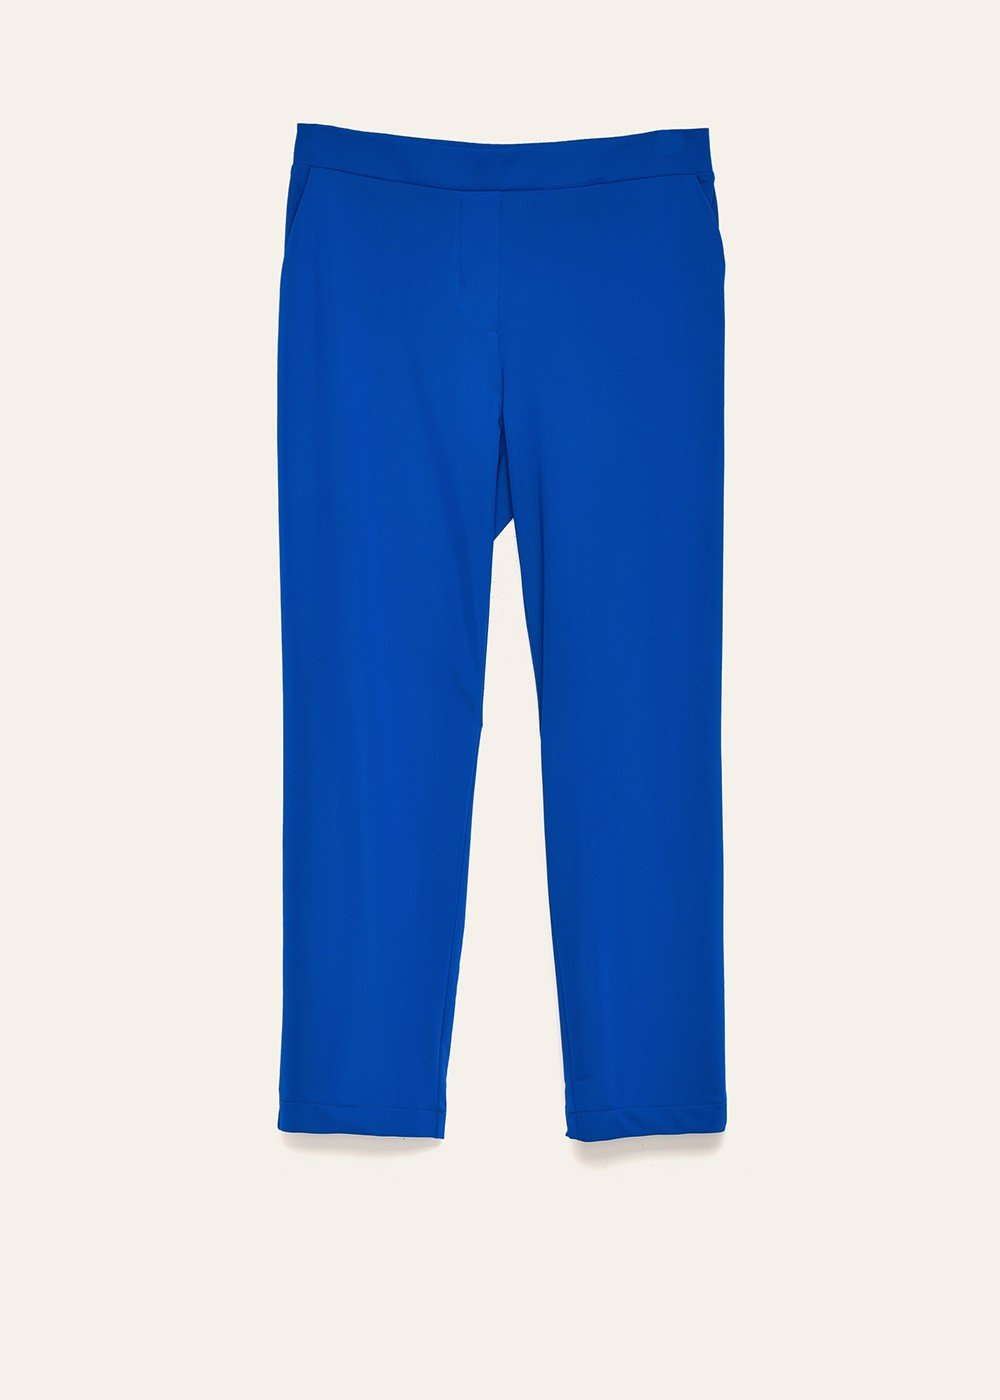 Cara elastic trousers in technical fabric - Blue - Woman